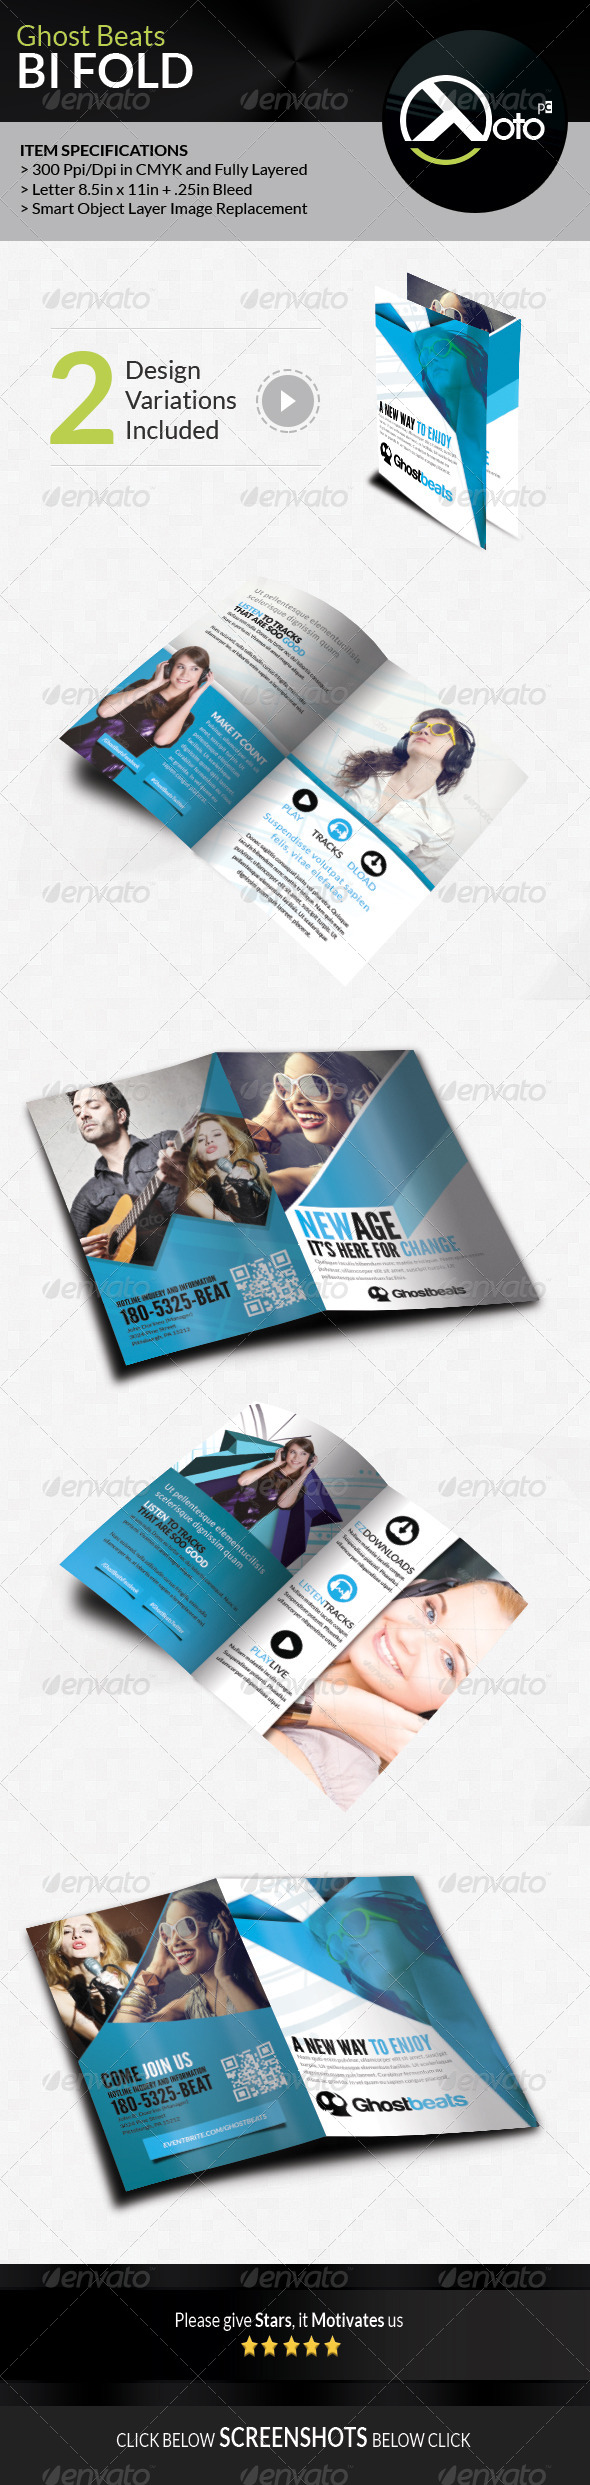 GraphicRiver Ghost Beats Music Downloads BiFold 7700999